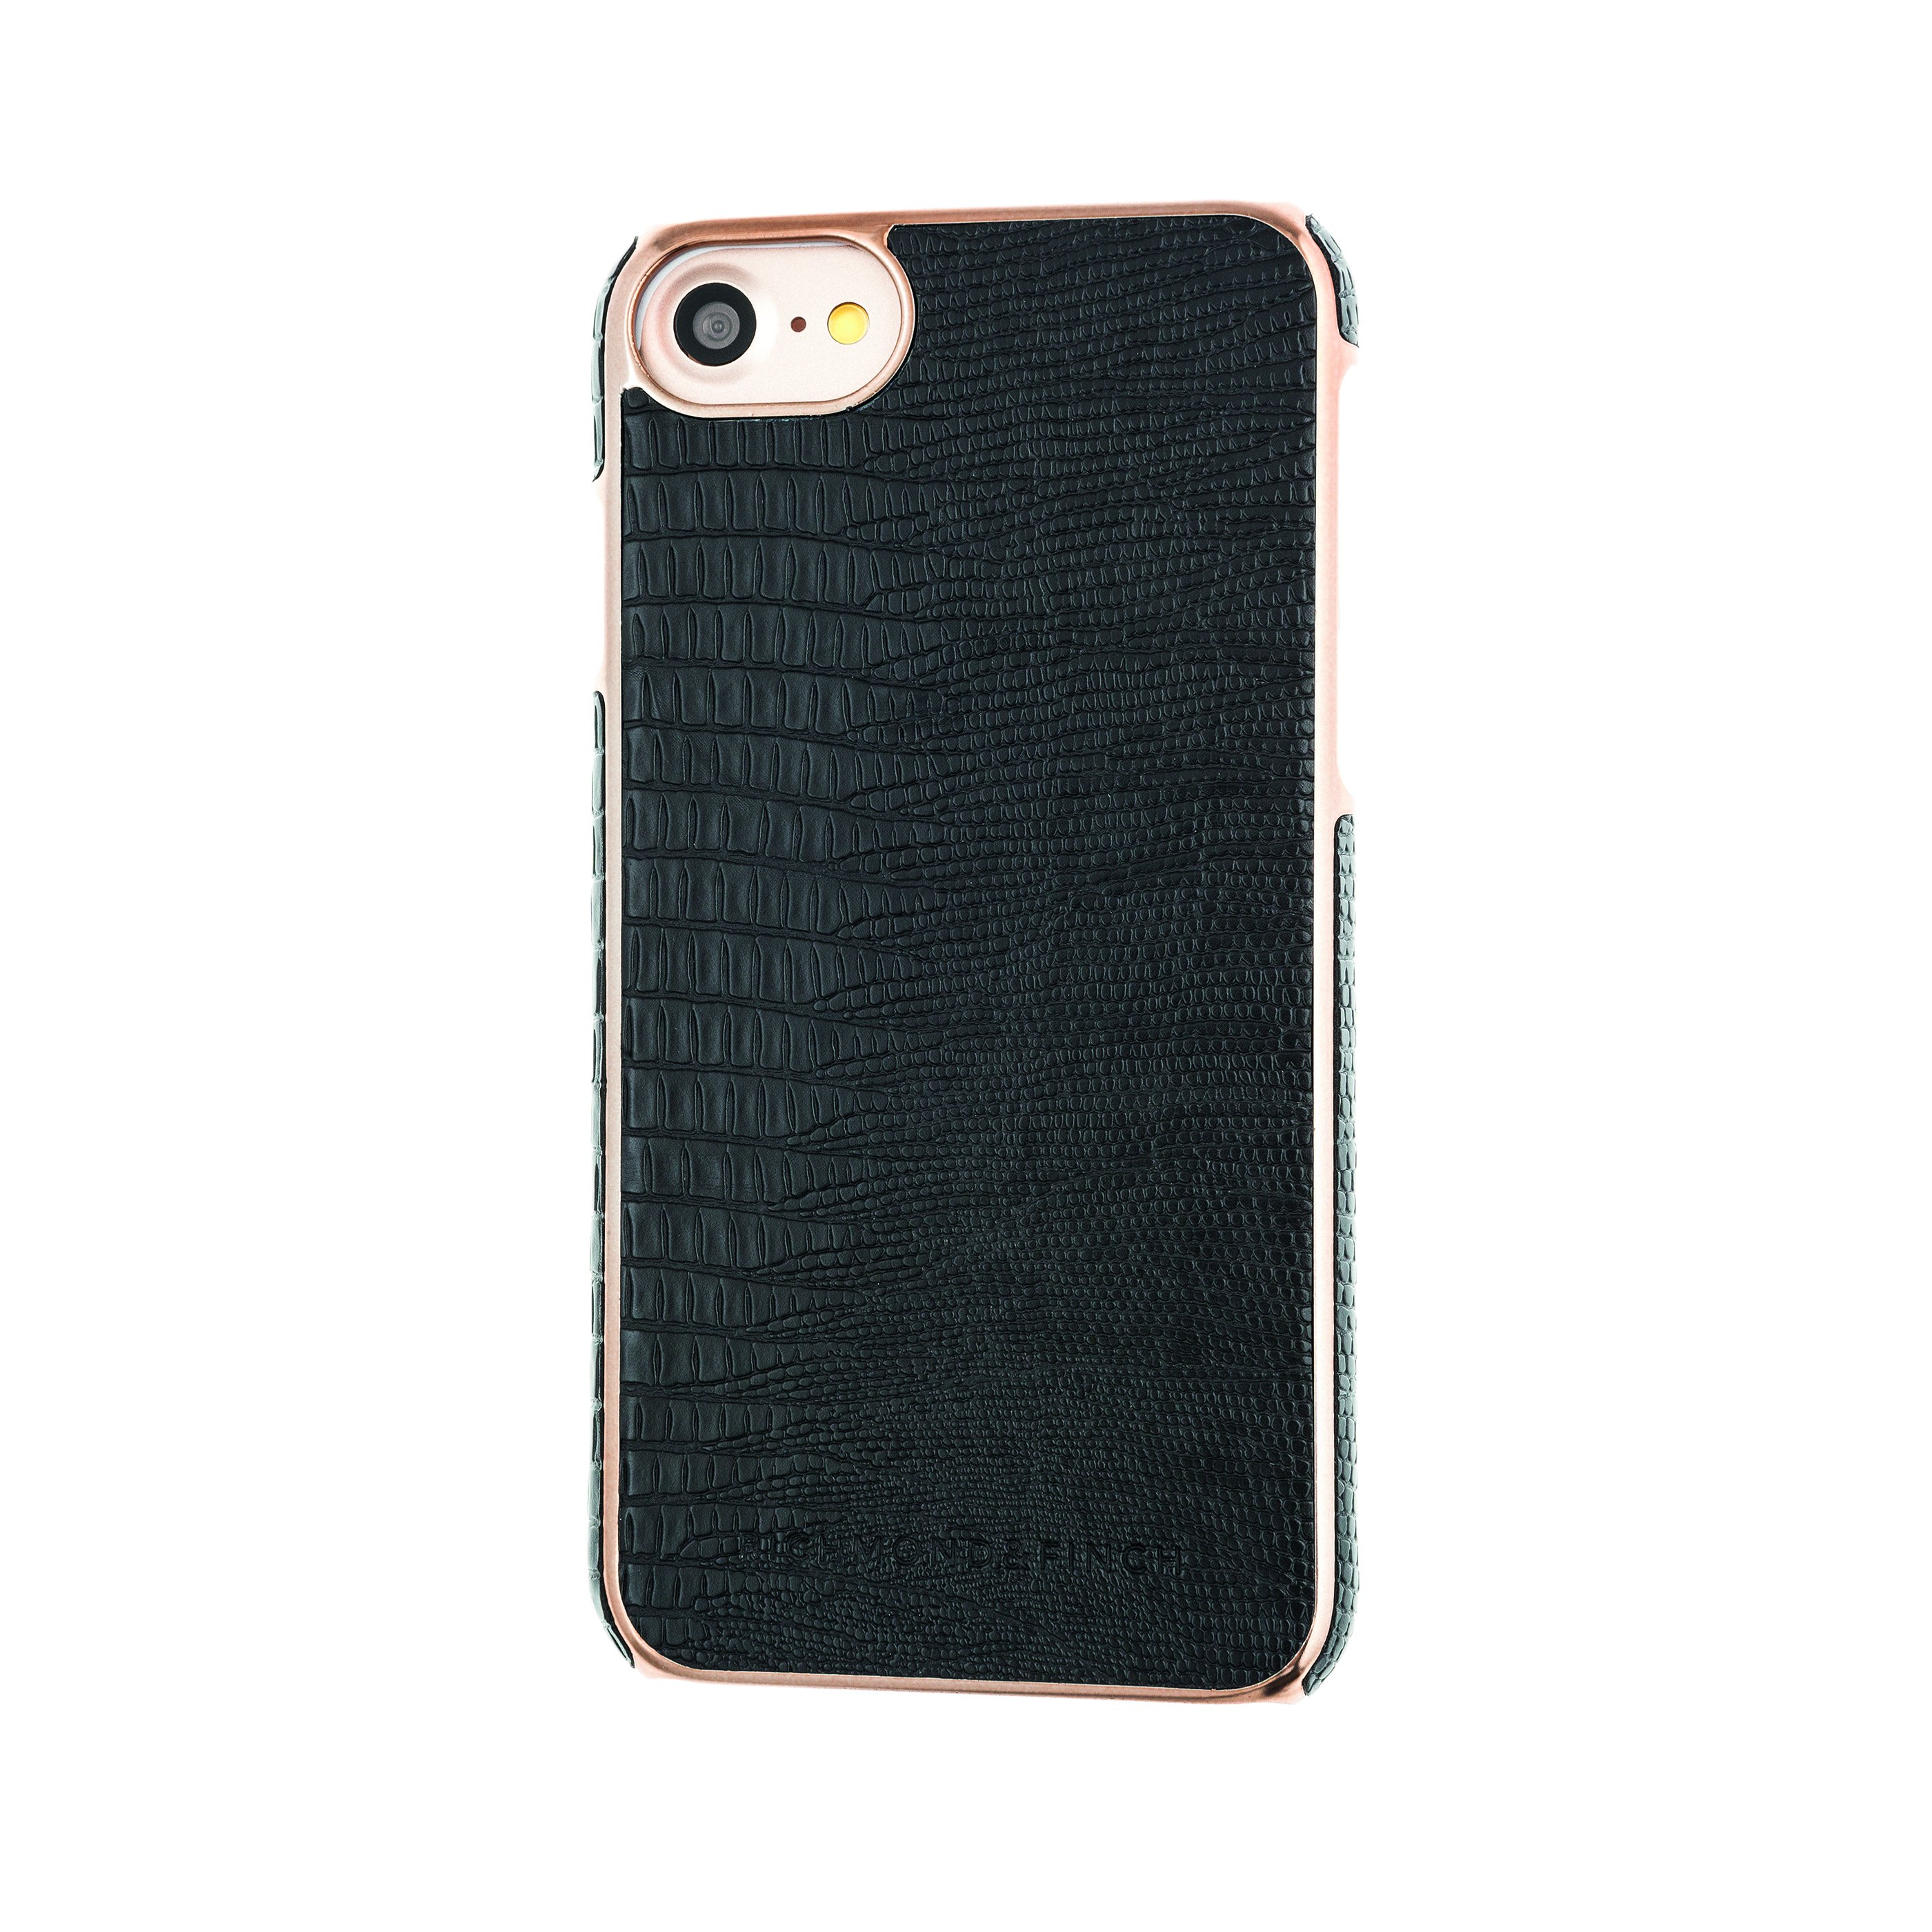 Richmond & Finch Coque Framed Rosé for iPhone 7 black reptile ...